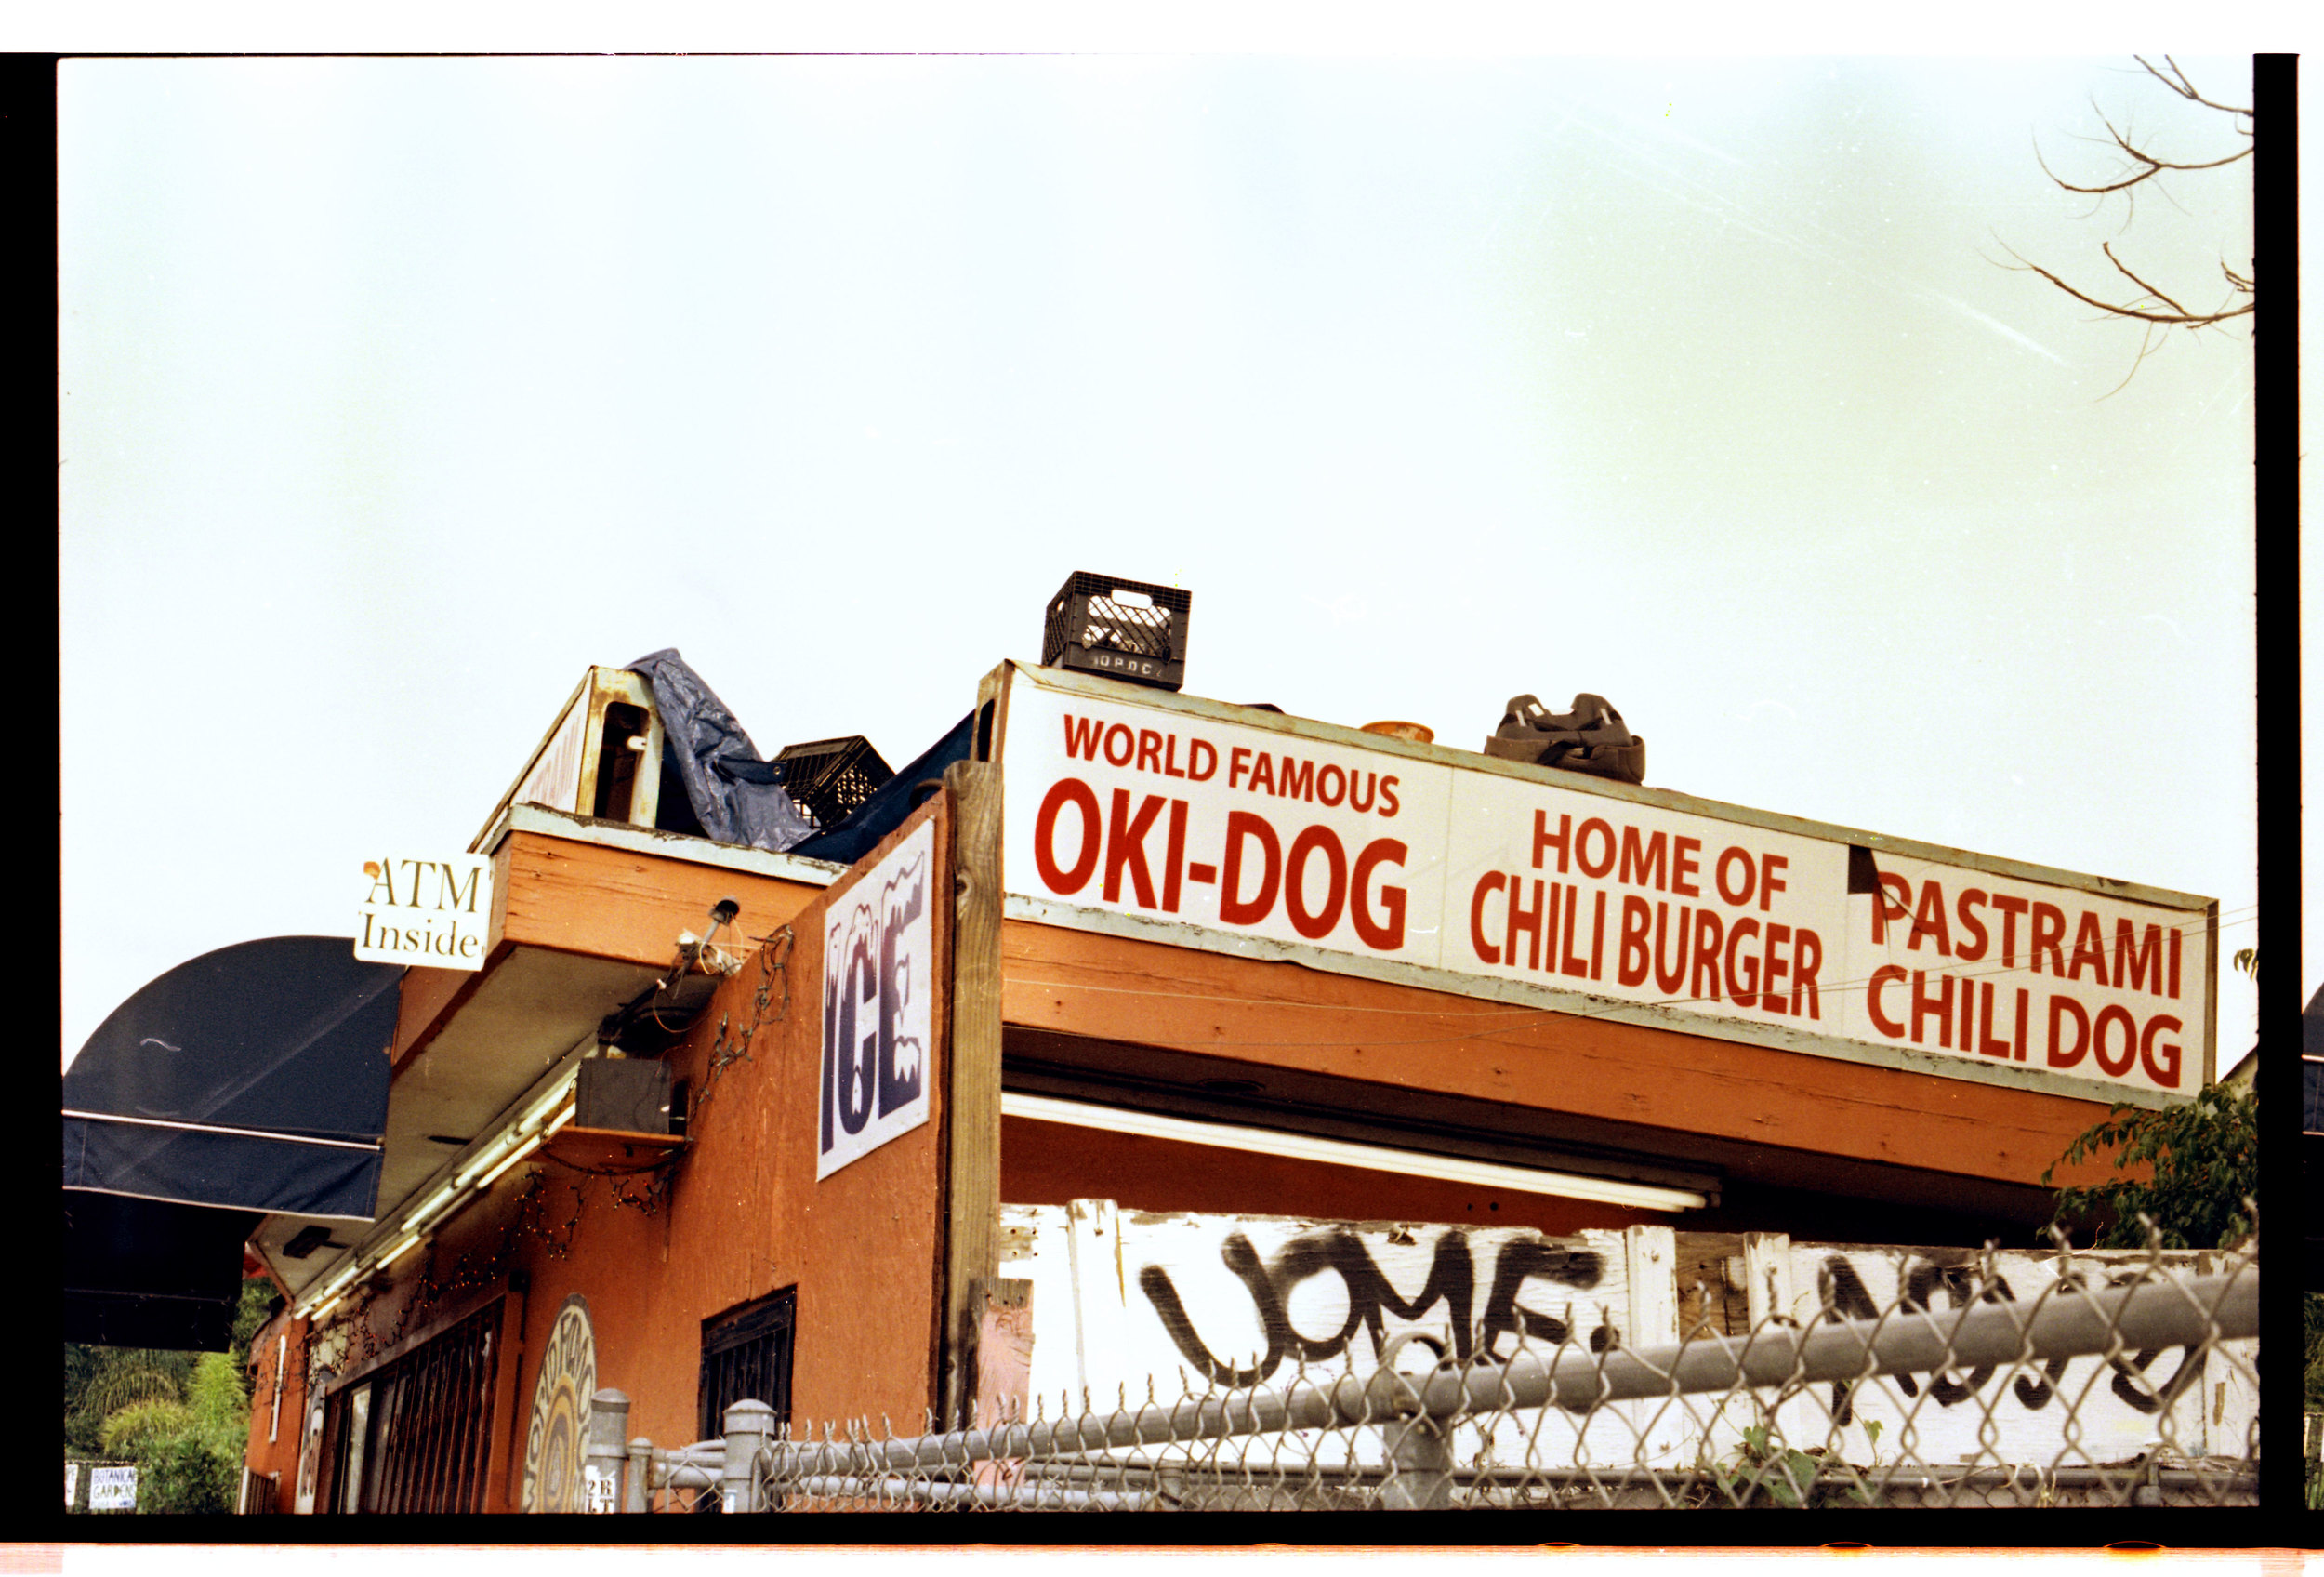 The World Famous Oki-Dog, home of the chili burger.